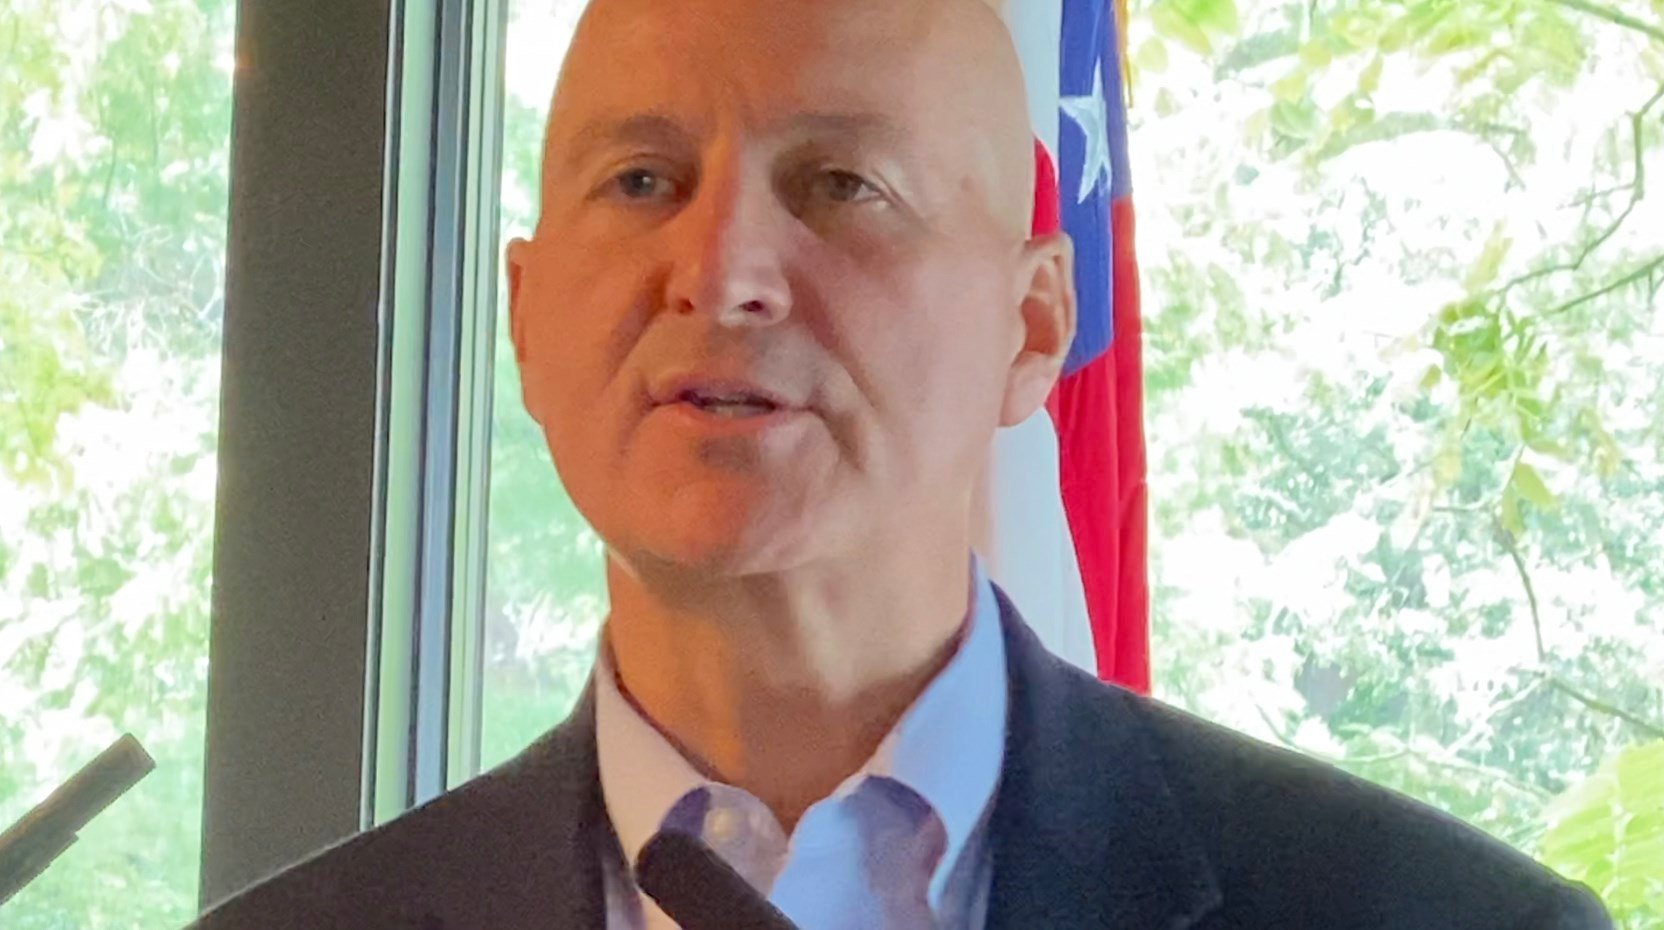 Governor reacts to postponing of health education standards